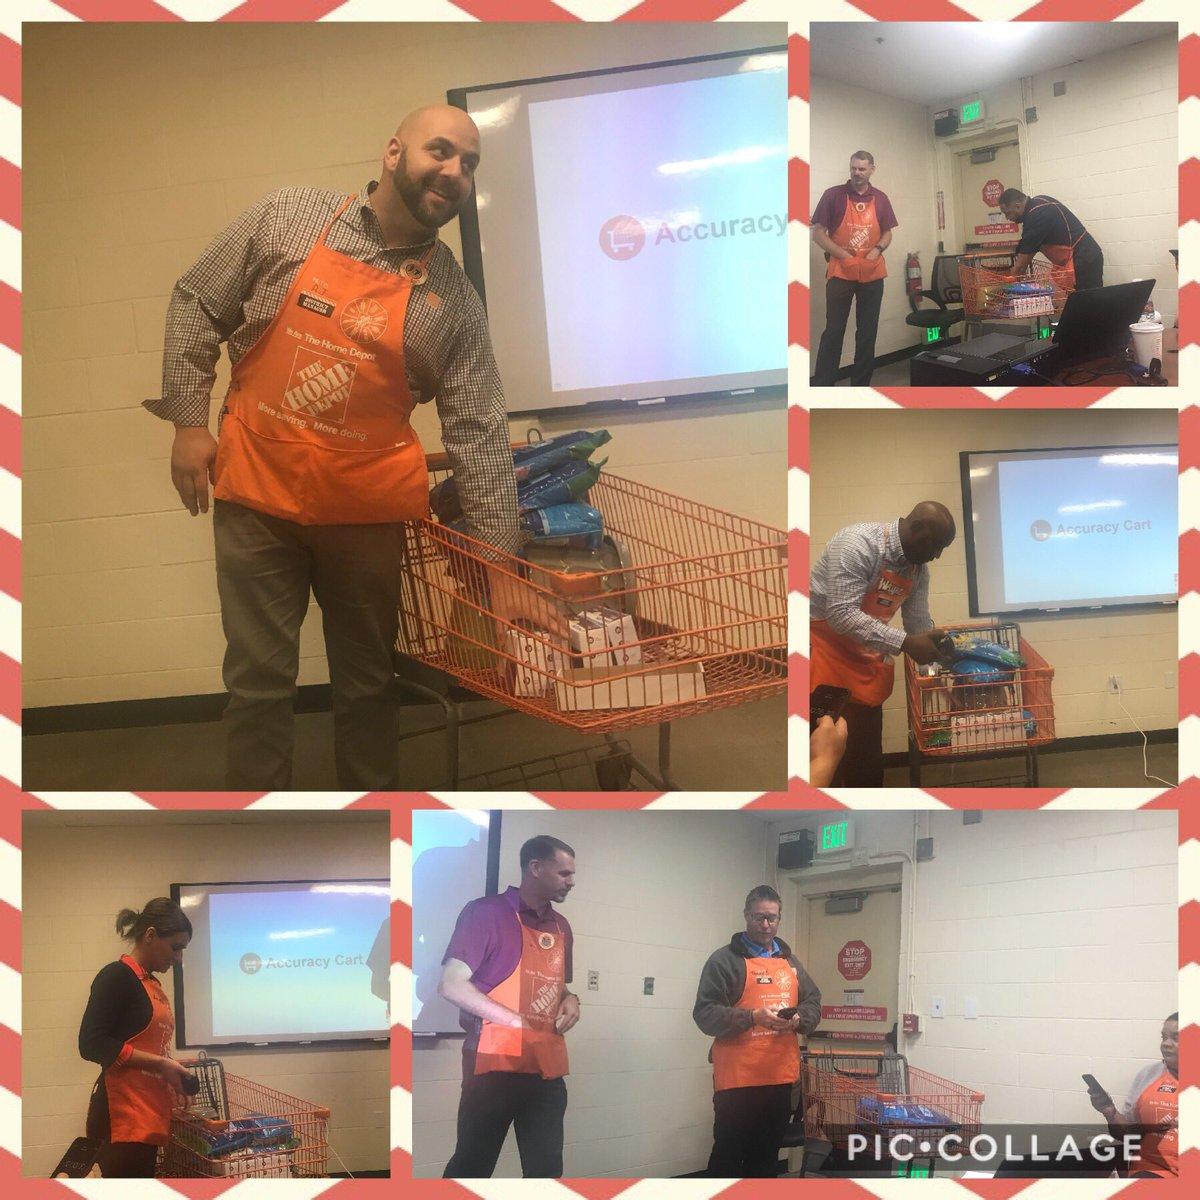 And @aj_mazzola is our winner with fastest time and 100% Accuracy!  great job to @tommybennetthd @PedroMal4150 @wxw430 and Laura! #ops <br>http://pic.twitter.com/eJ12TOvzIu